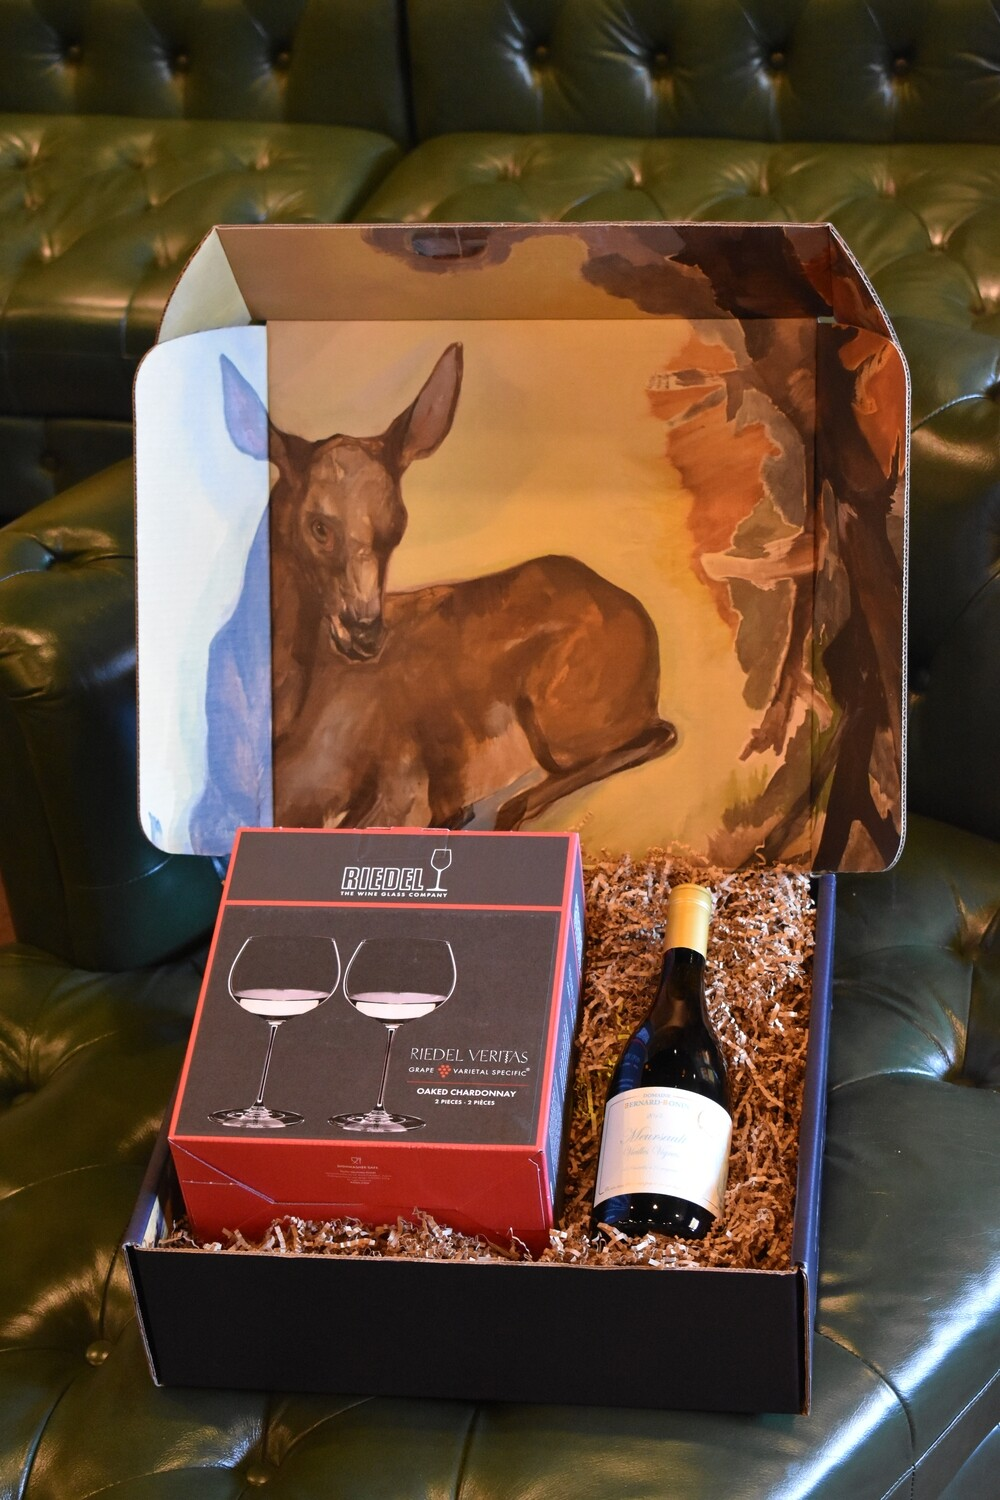 WH BOX WITH RIEDEL VERITAS OAKED CHARDONNAY GLASS SET OF TWO AND A BOTTLE OF BERNARD BONIN MEURSAULT VIEILLES VIGNES 2015